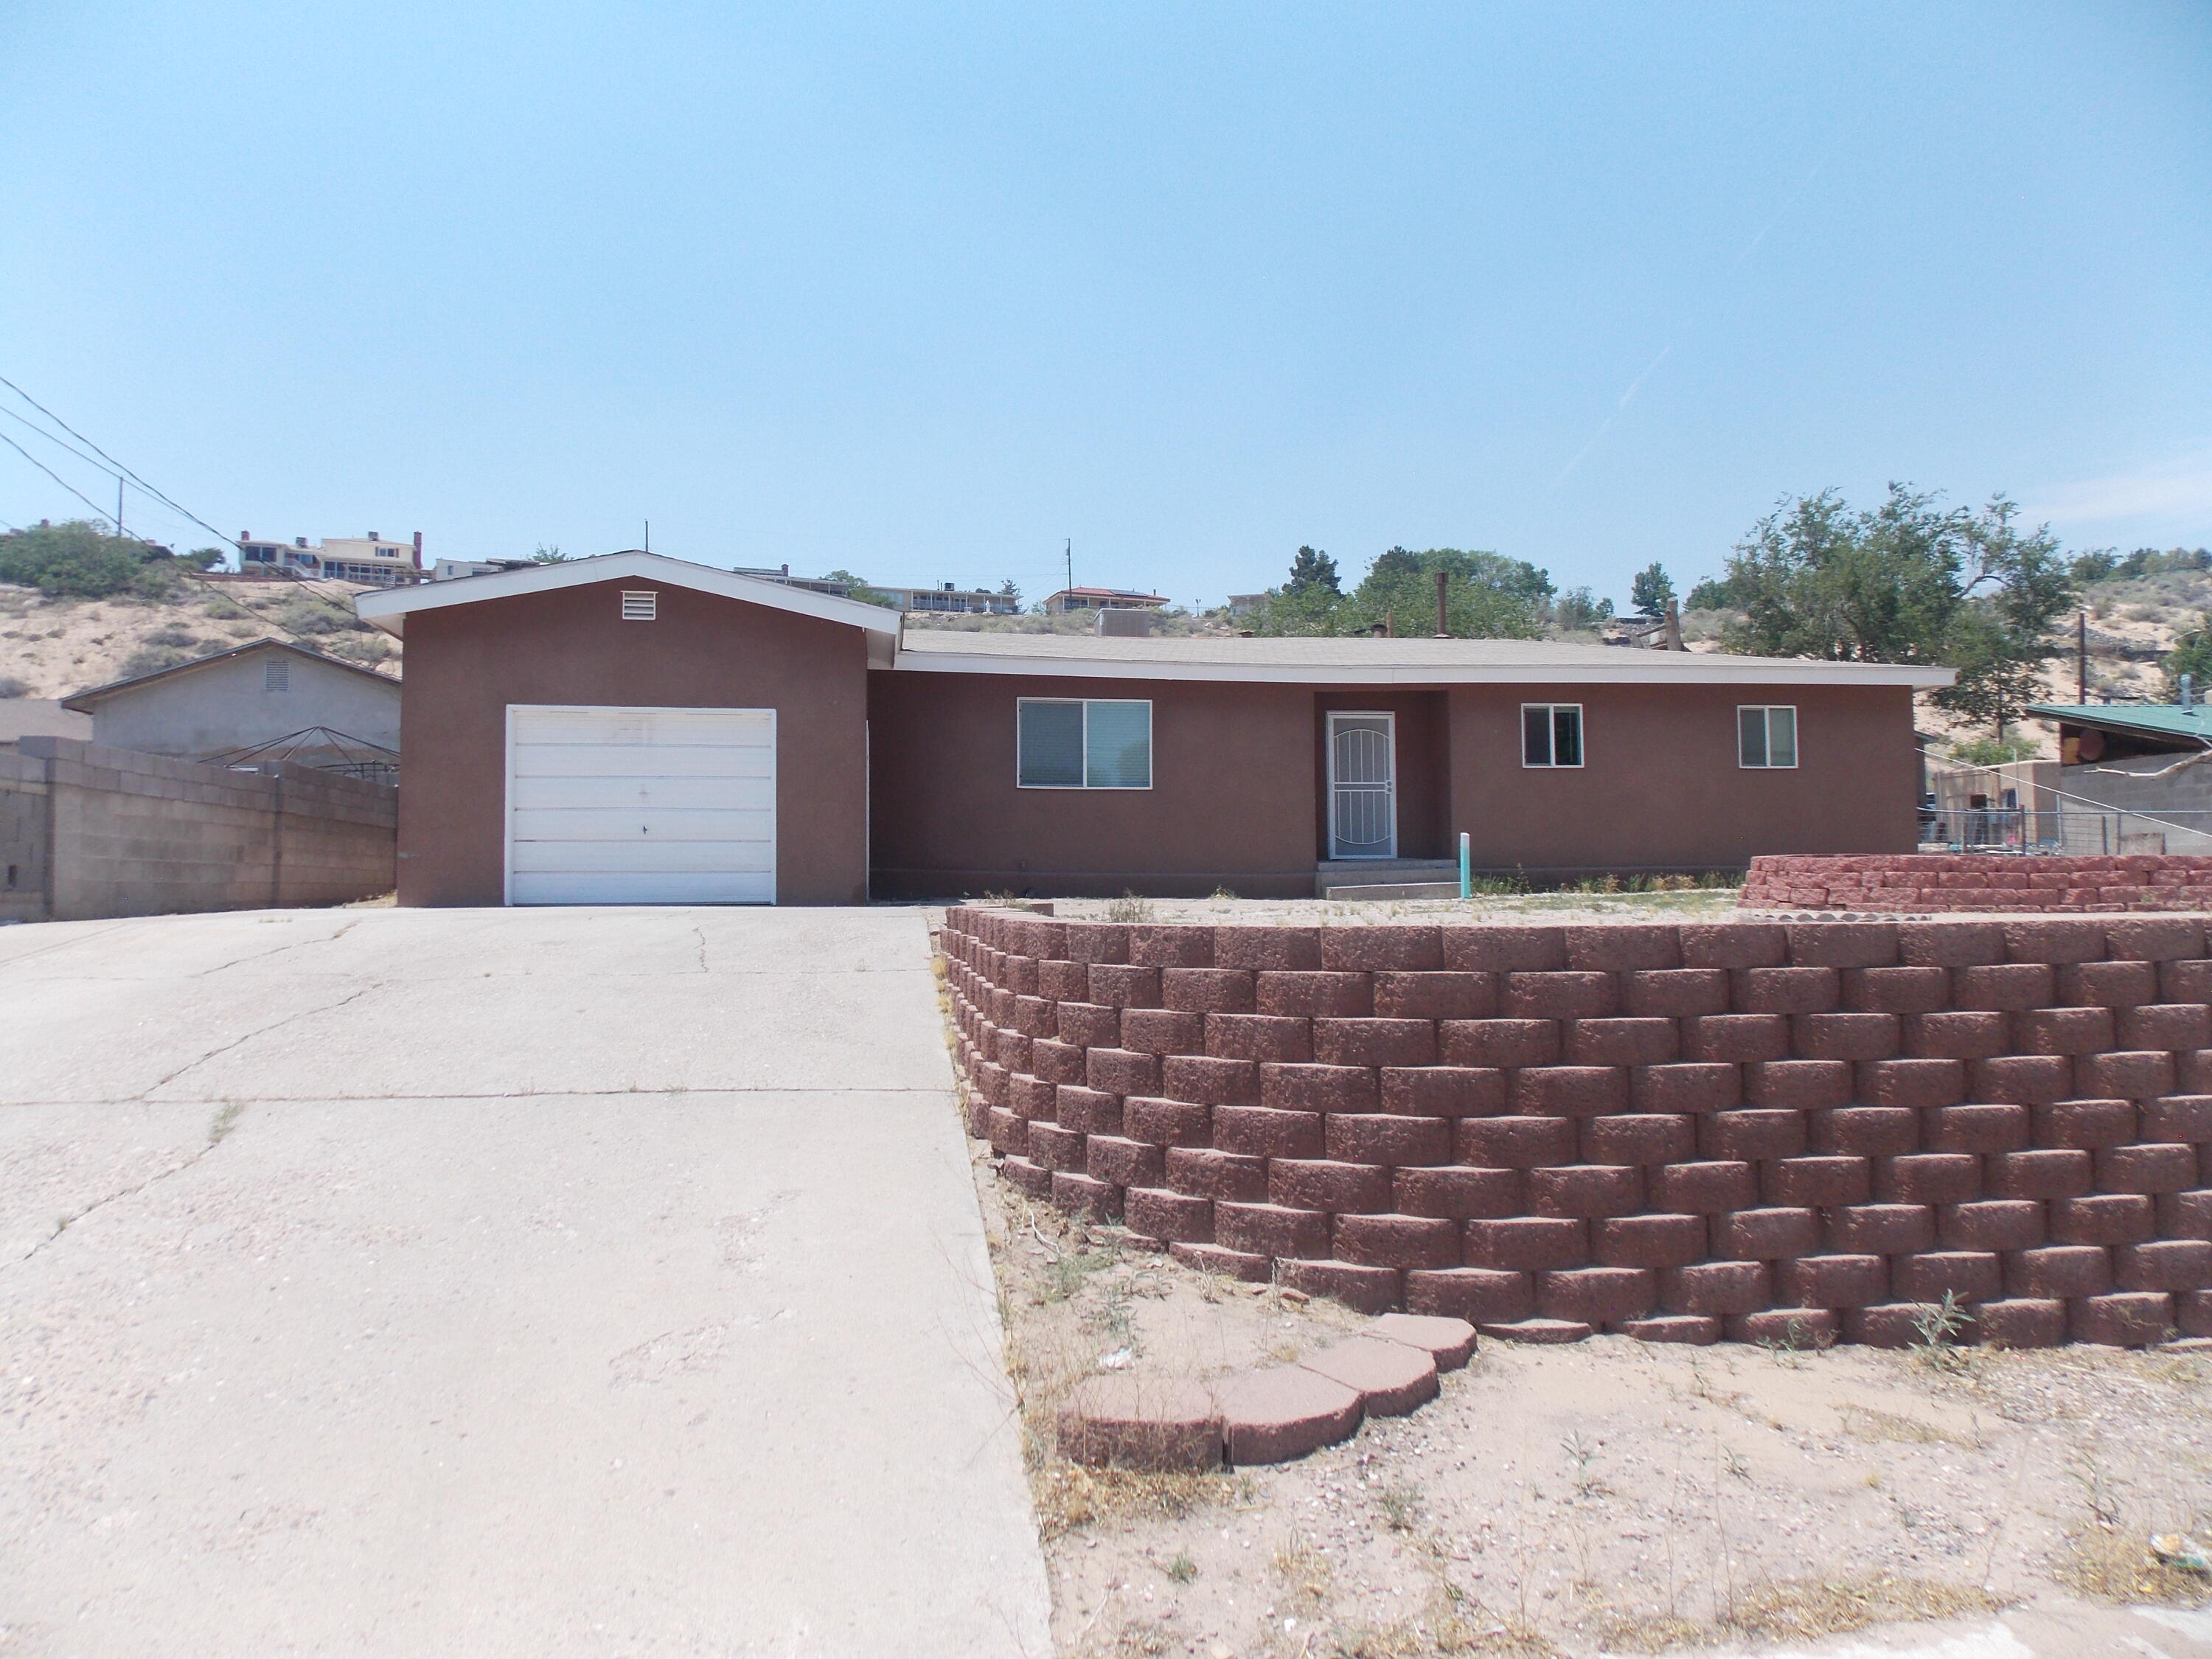 Move in ready  home, home is on a   quarter acre, 4 bedrooms, with new windows, new flooring, back yard access, remodeled bathroom, new kitchen and granite counter tops. big lot near the park. enjoy the large lot for all your entertaining needs. new water heater.